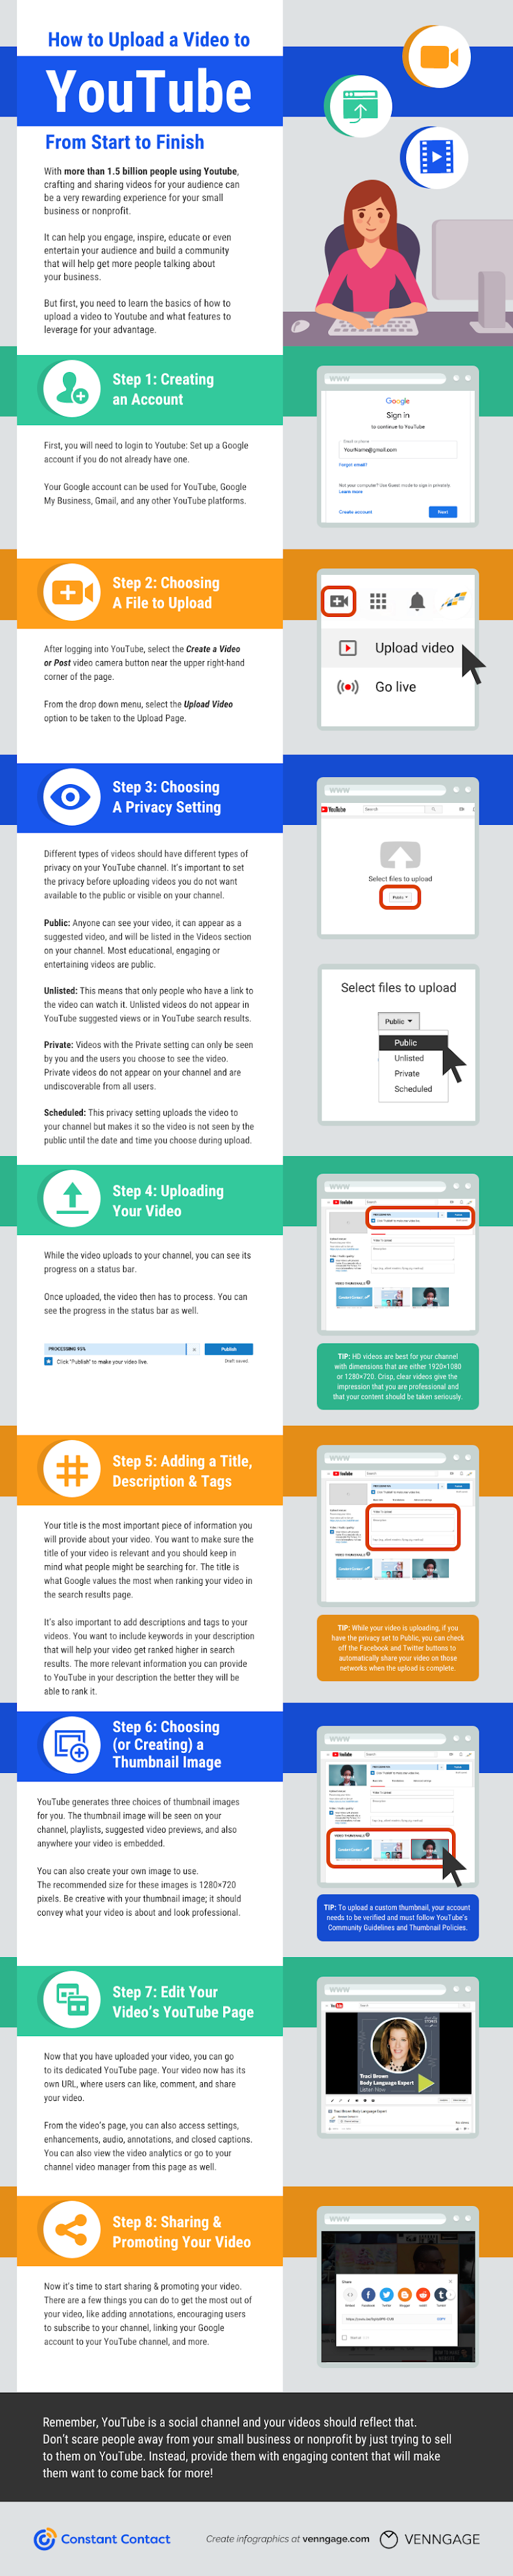 How to Upload a Video to YouTube from Start to Finish #infographic #Youtube #Videos #How to Upload